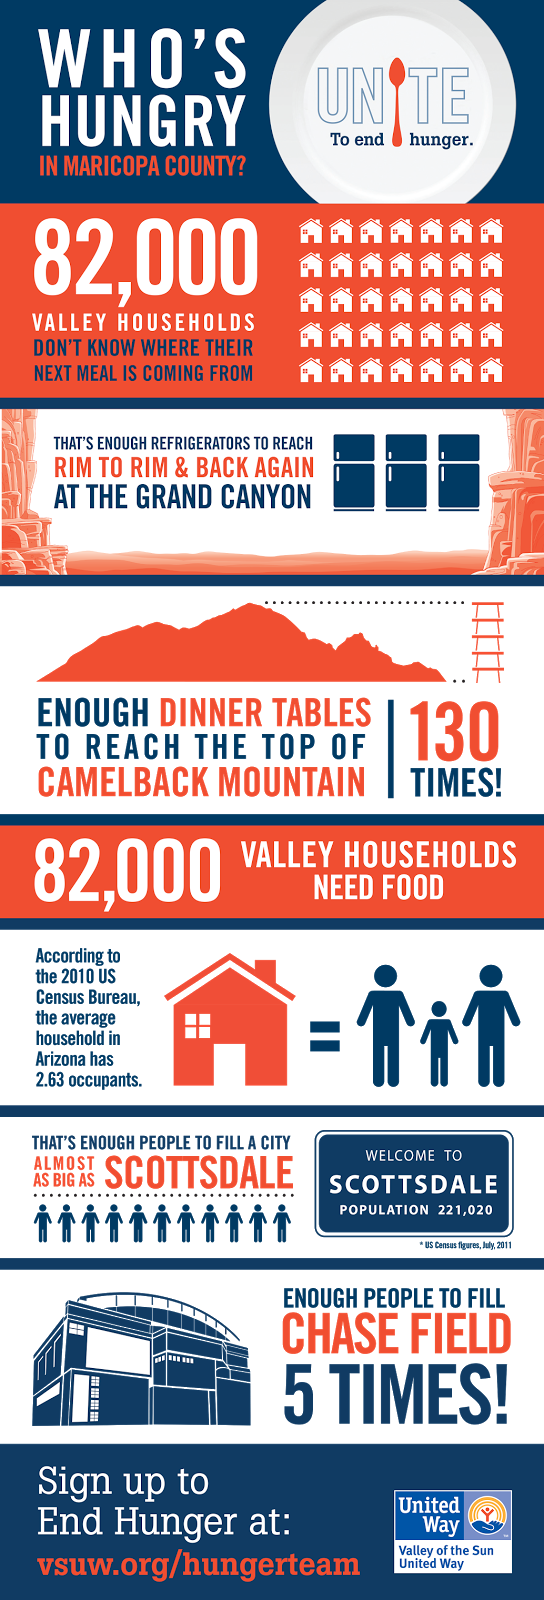 Who's hungry in Maricopa County?  82,000 Valley households don't know where their next meal is coming from.  That's enough refrigerators to reach rim-to-rim and back again at the Grand Canyon.  Enough Dinner Tables to reach the top of Camelback Mountain, 130 Times!  According to a 2010 US Census Bureau, the average houehold in Arizona has 2.63 occupants.  That's enough people to fill a city almost as big as Scottsdale or fill Chase Field-- Five Times.  Sign up to end Hunger at vsuw.org/hungerteam.